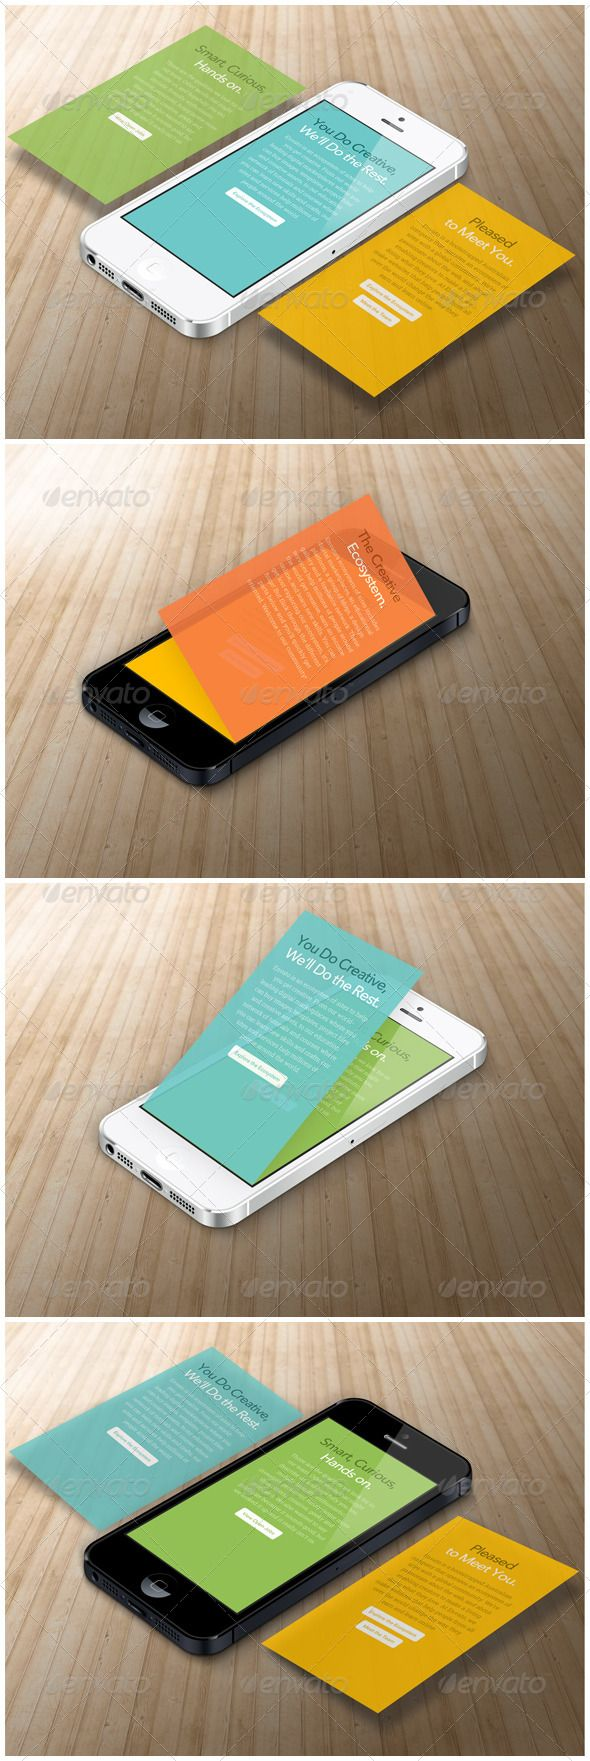 Phone App Mock up - Mobile Displays $4